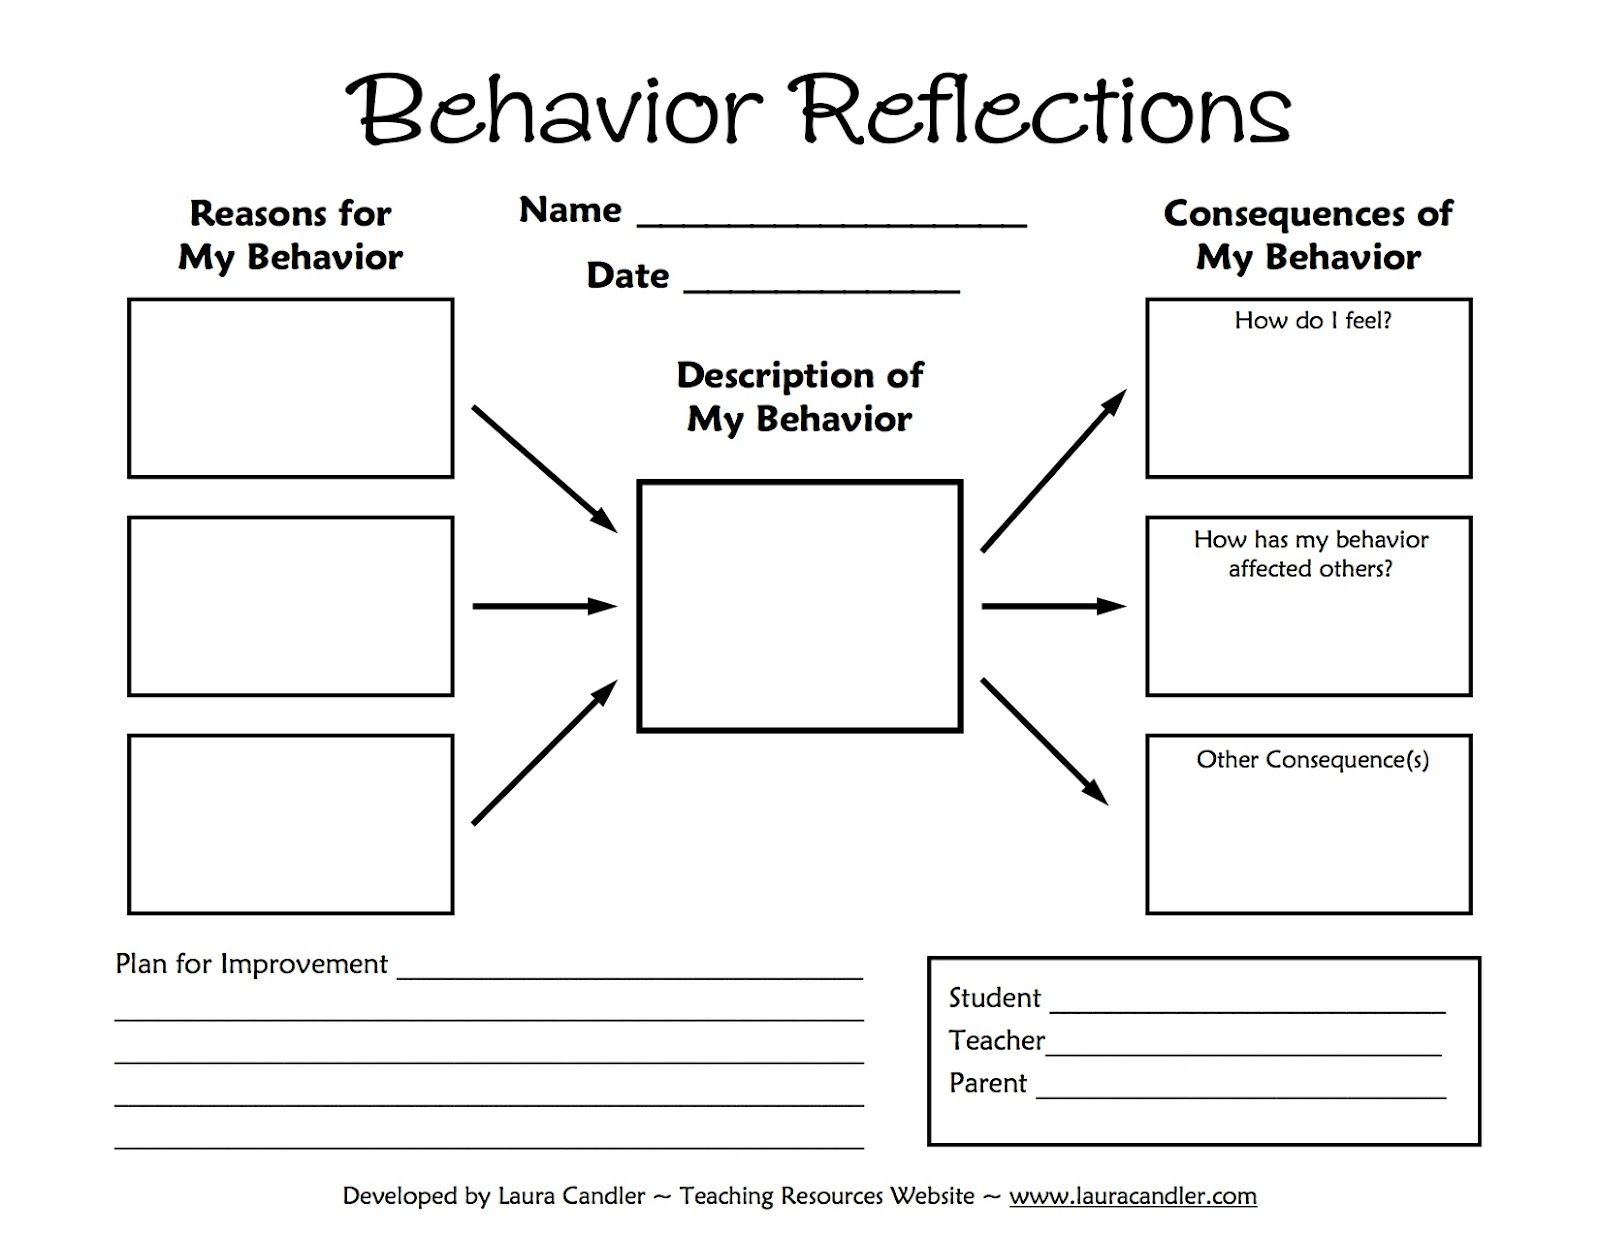 Behavior Reflections Sheet